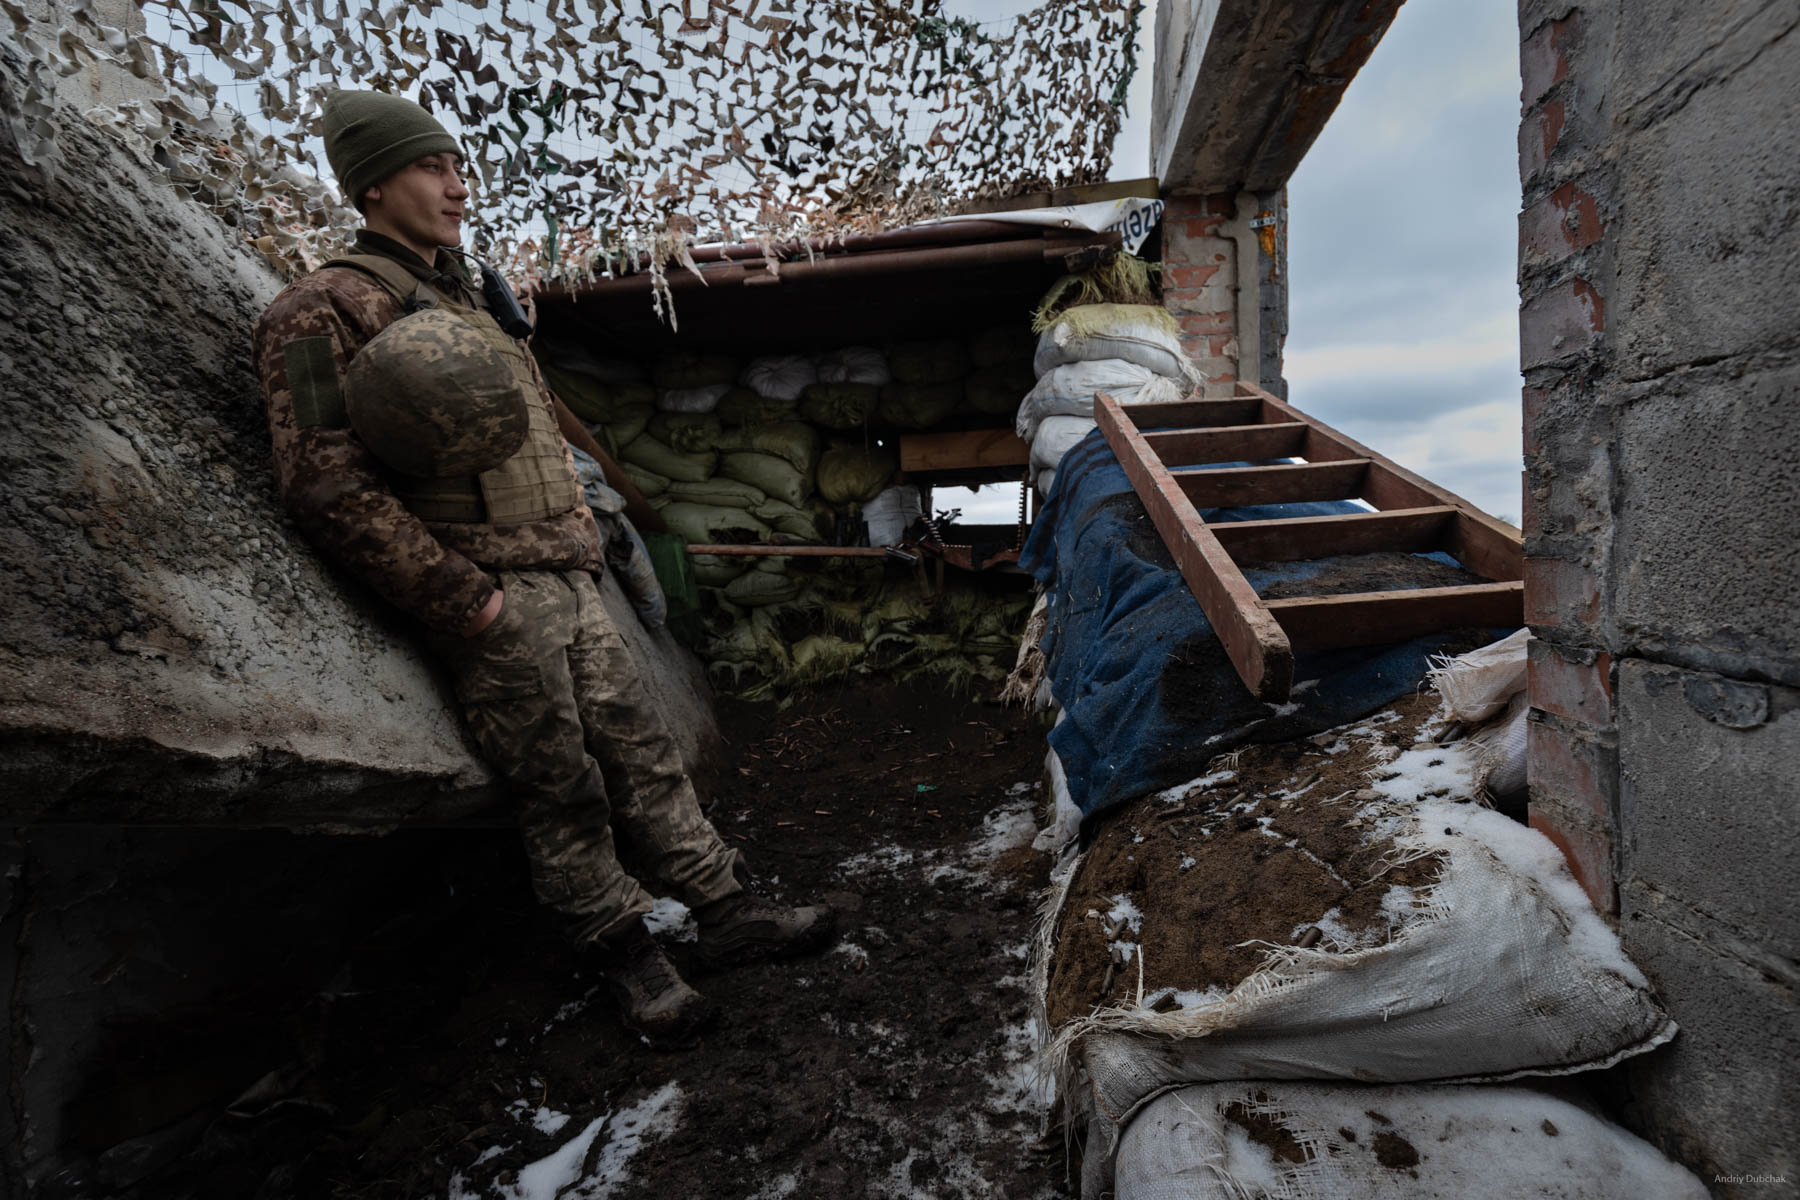 "At one of the front positions, I speak with ""Archie"", a 20-year-old boy from the region of Nikolayev. He tells us that the militants often try to approach our positions through wood lines at night; our warriors have to respond with fire at regular intervals. Shirokine, March 2018. Video: https://goo.gl/iVAXZB"